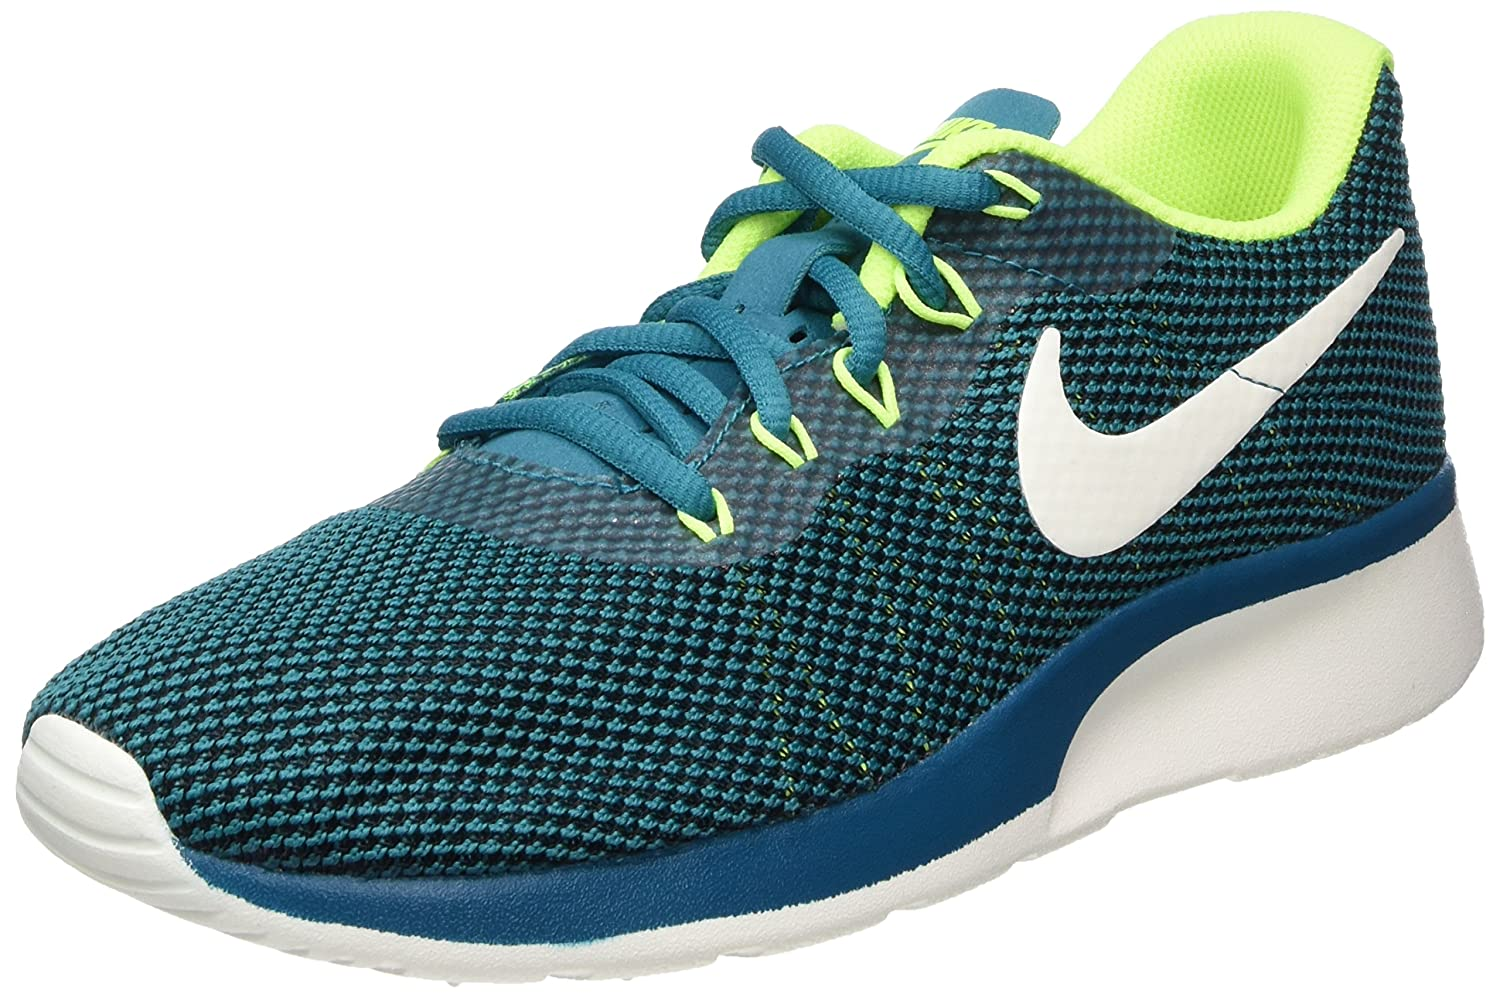 1970967085a7b Nike Men s Tanjun Racer Blue Sneakers  Buy Online at Low Prices in India -  Amazon.in